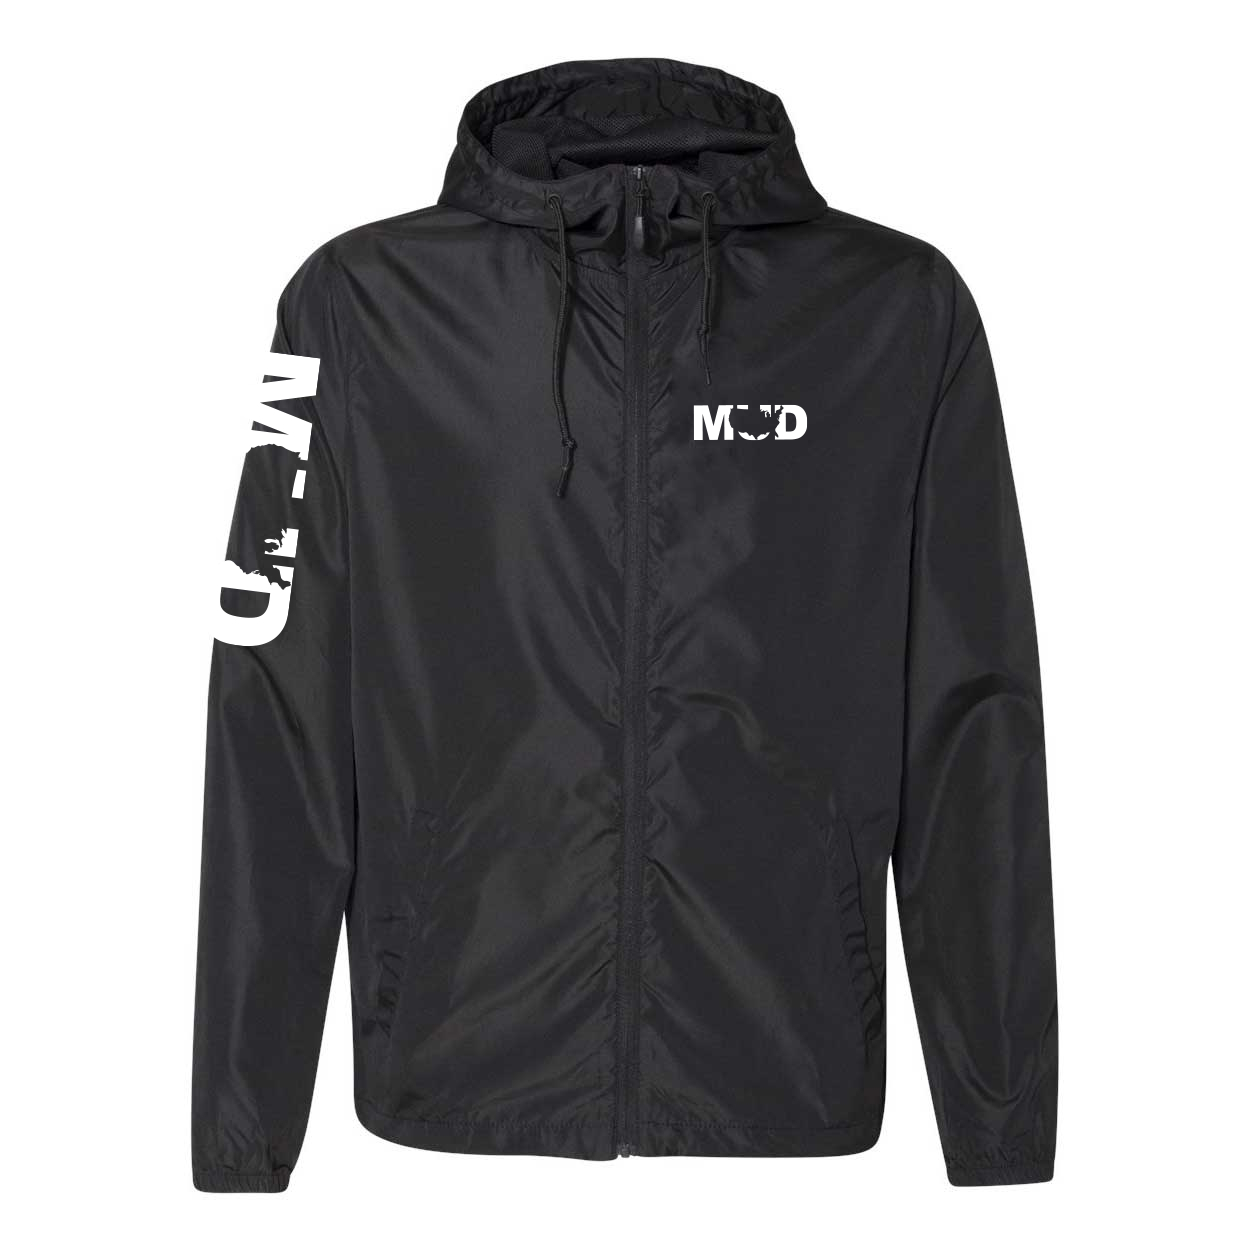 Mud United States Classic Lightweight Windbreaker Black (White Logo)